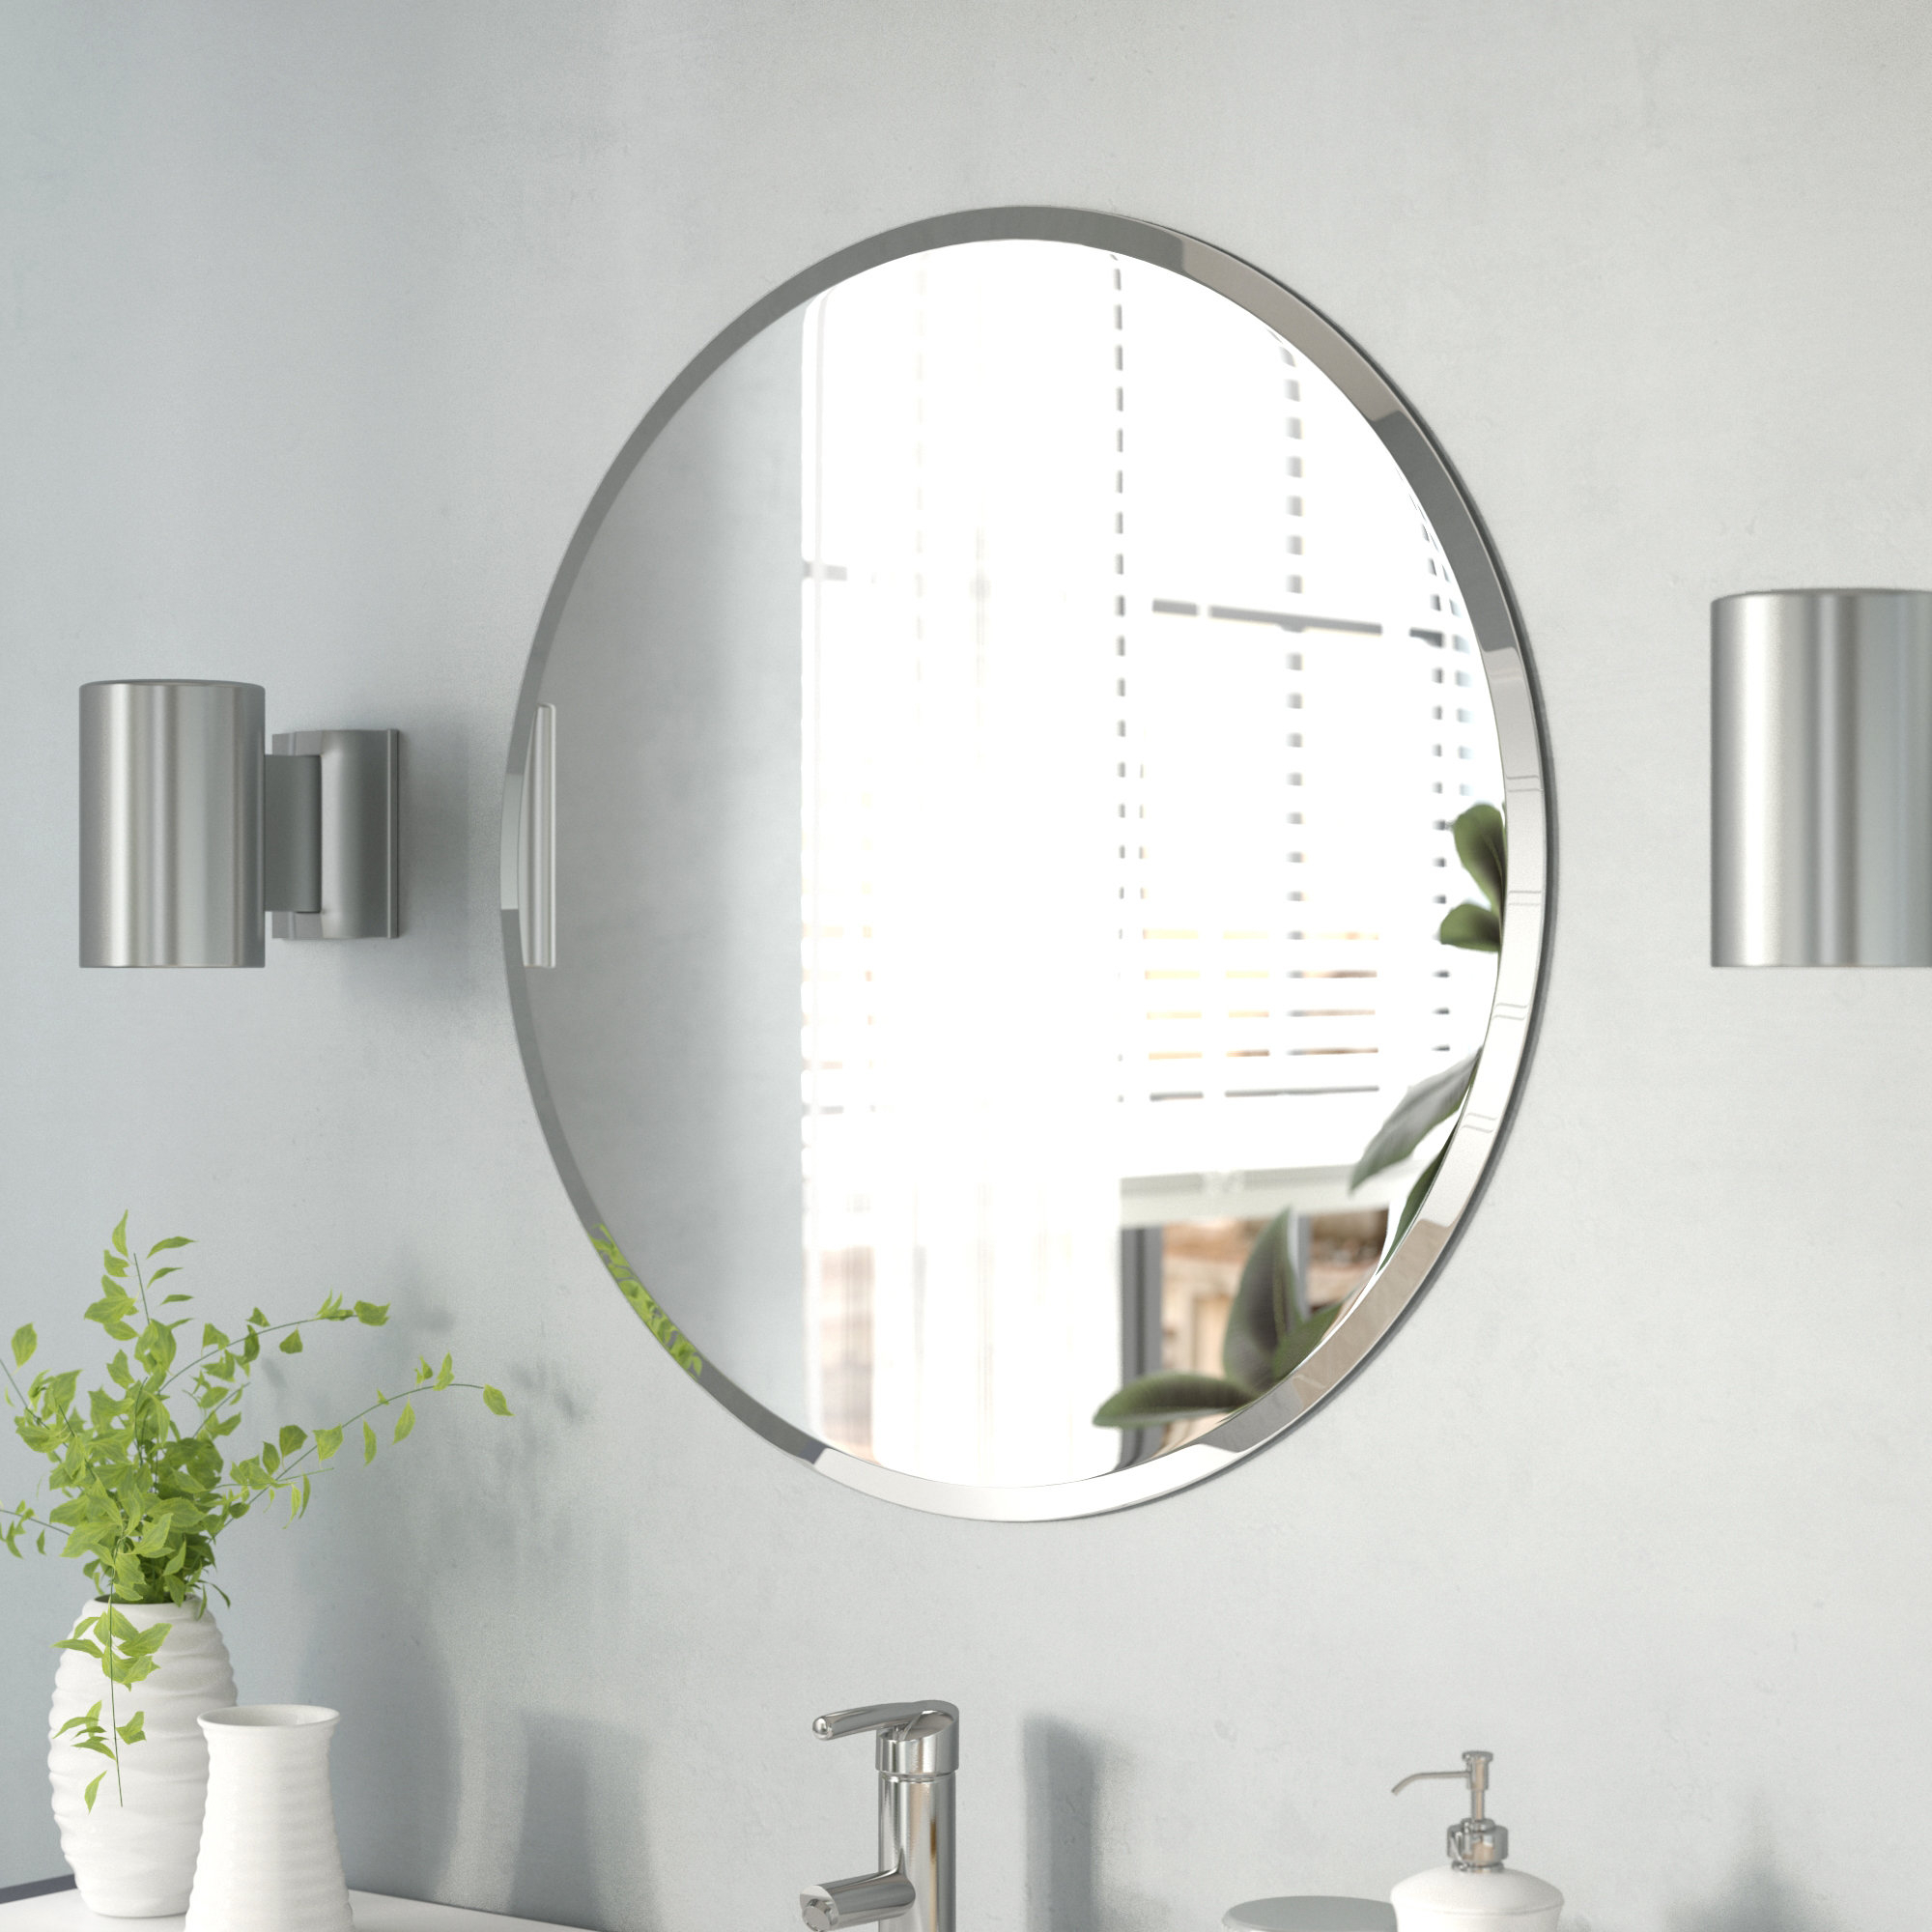 Adjustable Wall Mirror | Wayfair With Phineas Wall Mirrors (Image 1 of 20)